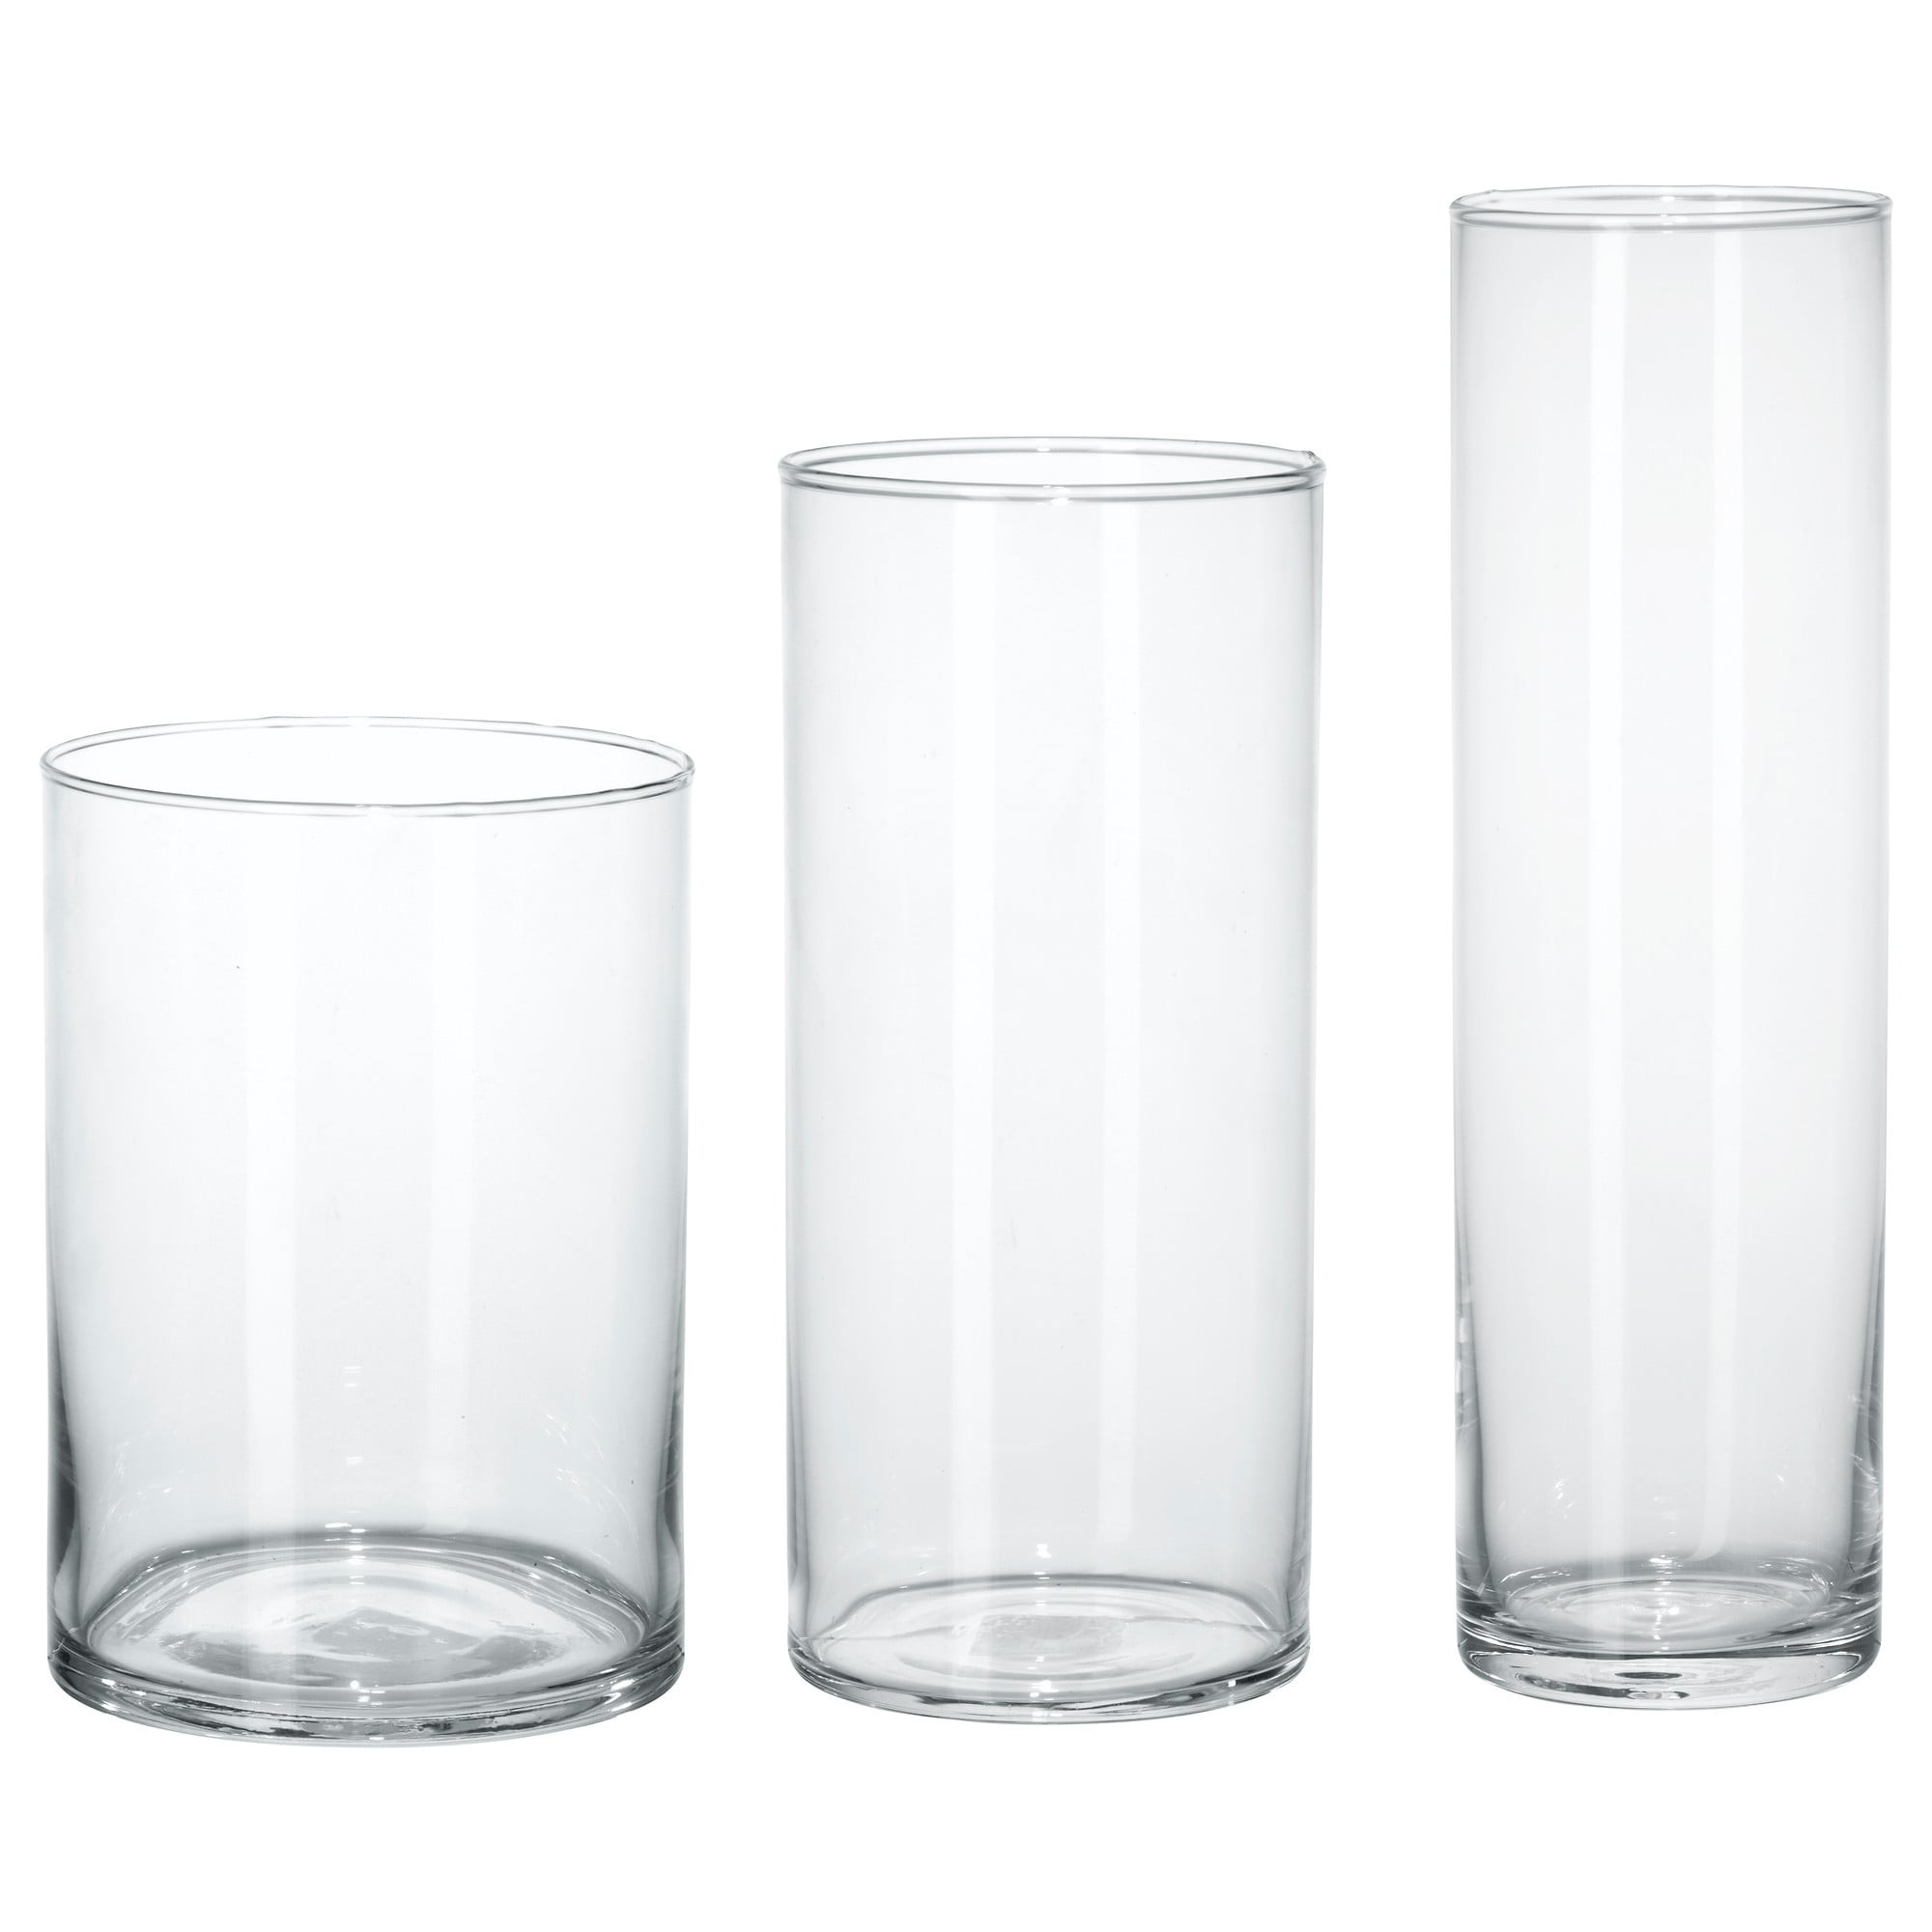 discount glass flower vases of cylinder vase set of 3 ikea throughout english frana§ais